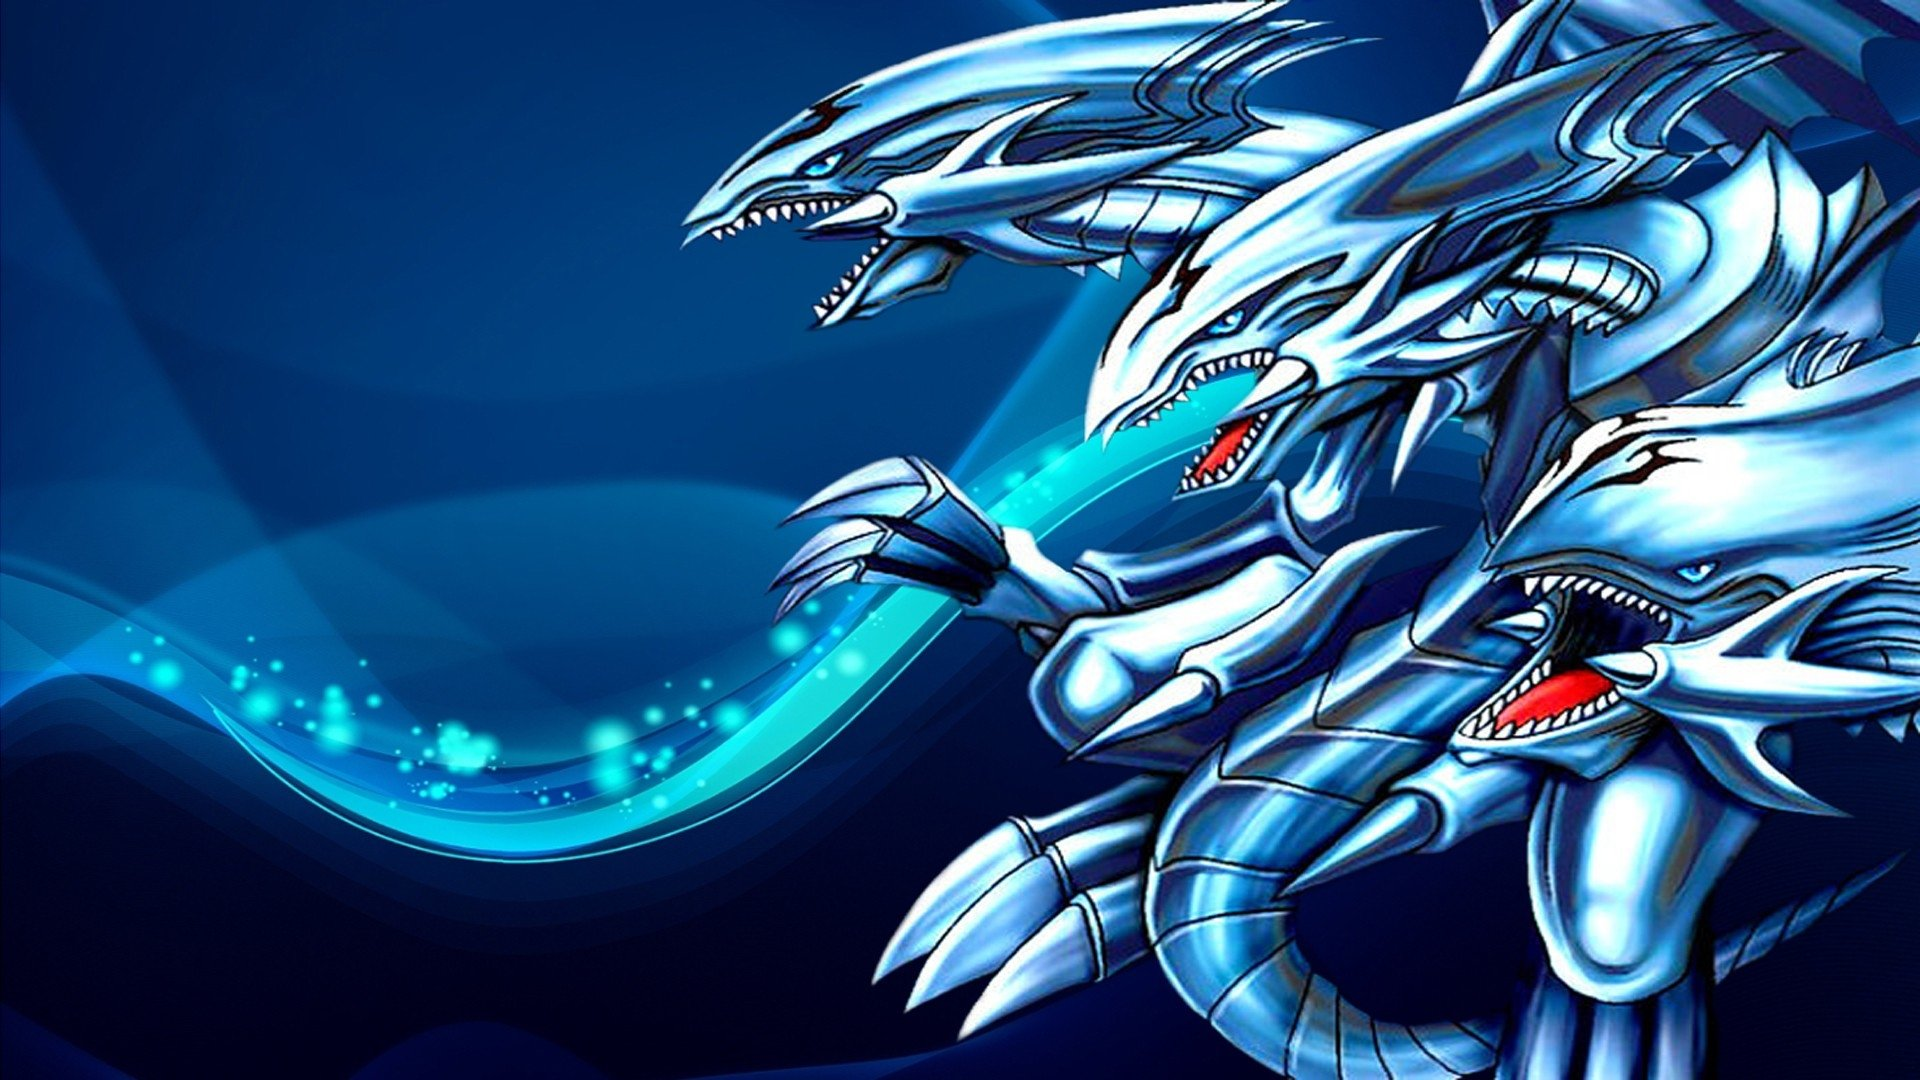 76 Yu Gi Oh Hd Wallpapers Background Images Wallpaper Abyss